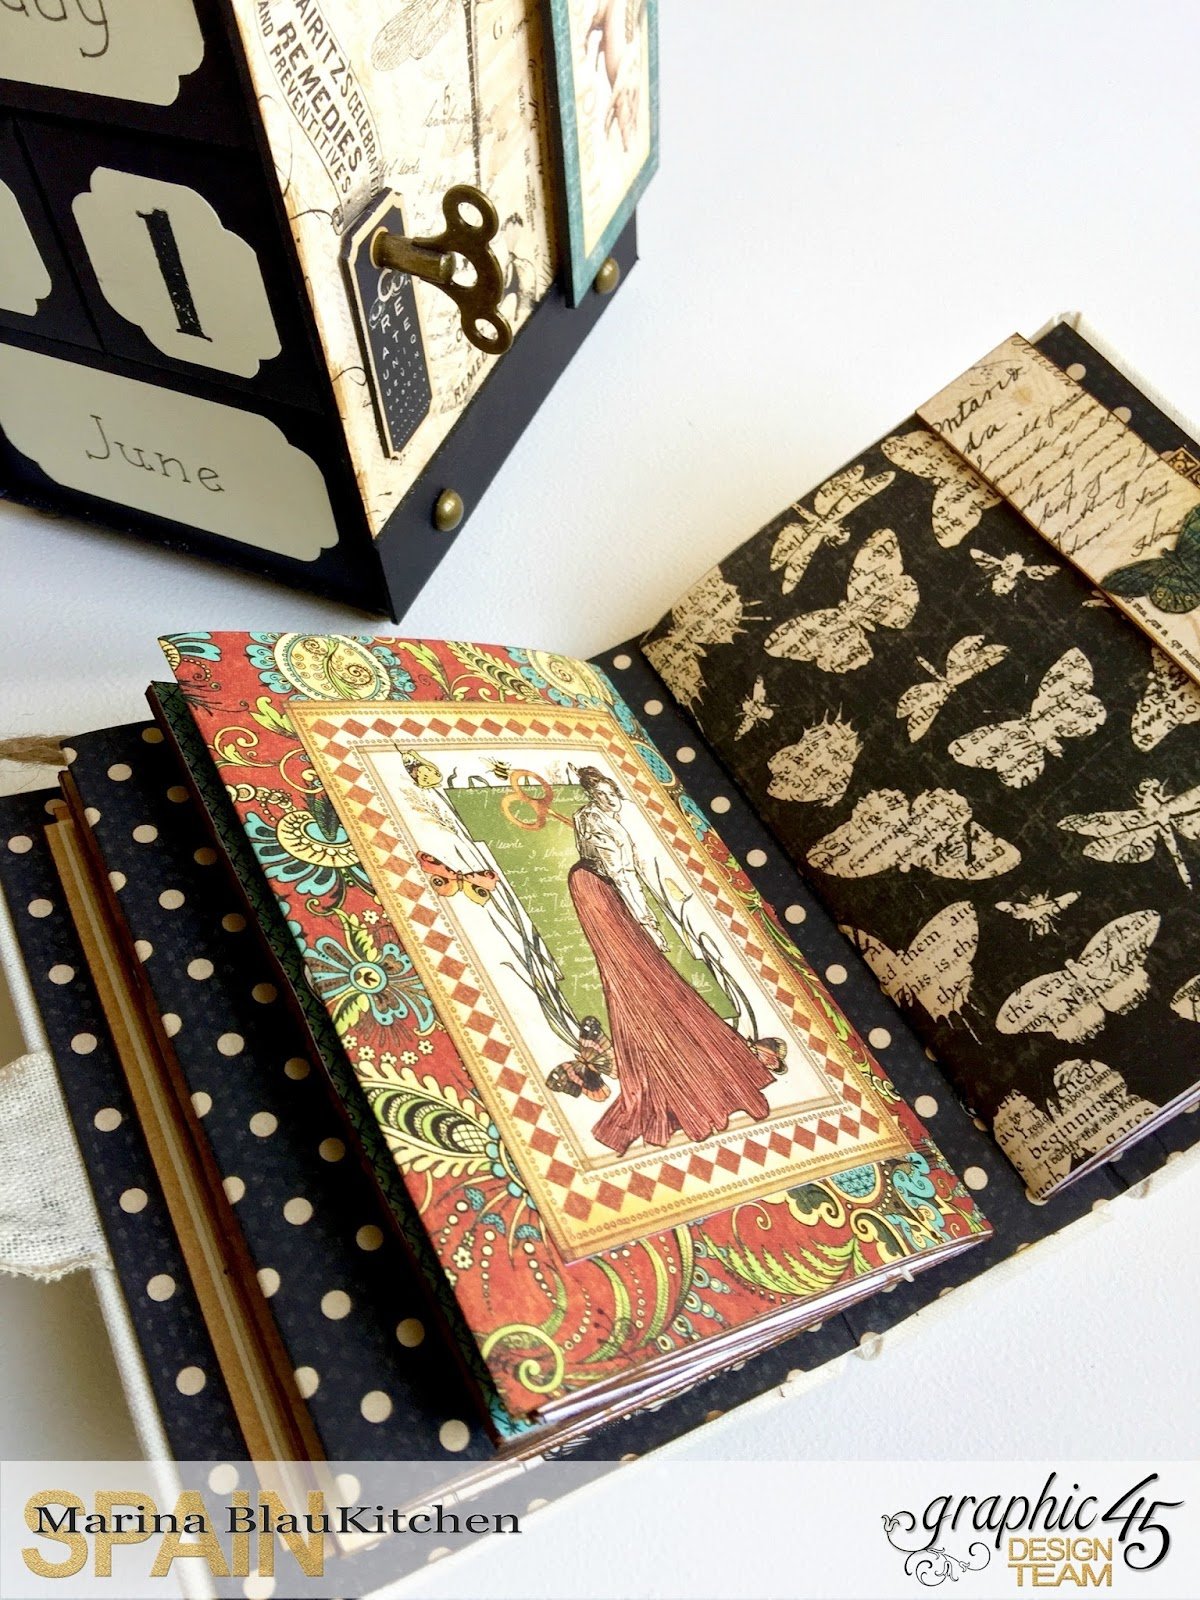 Album Binding Olde Curiosity Shoppe Tutorial by Marina Blaukitchen Product by Graphic 45 photo 12.jpg